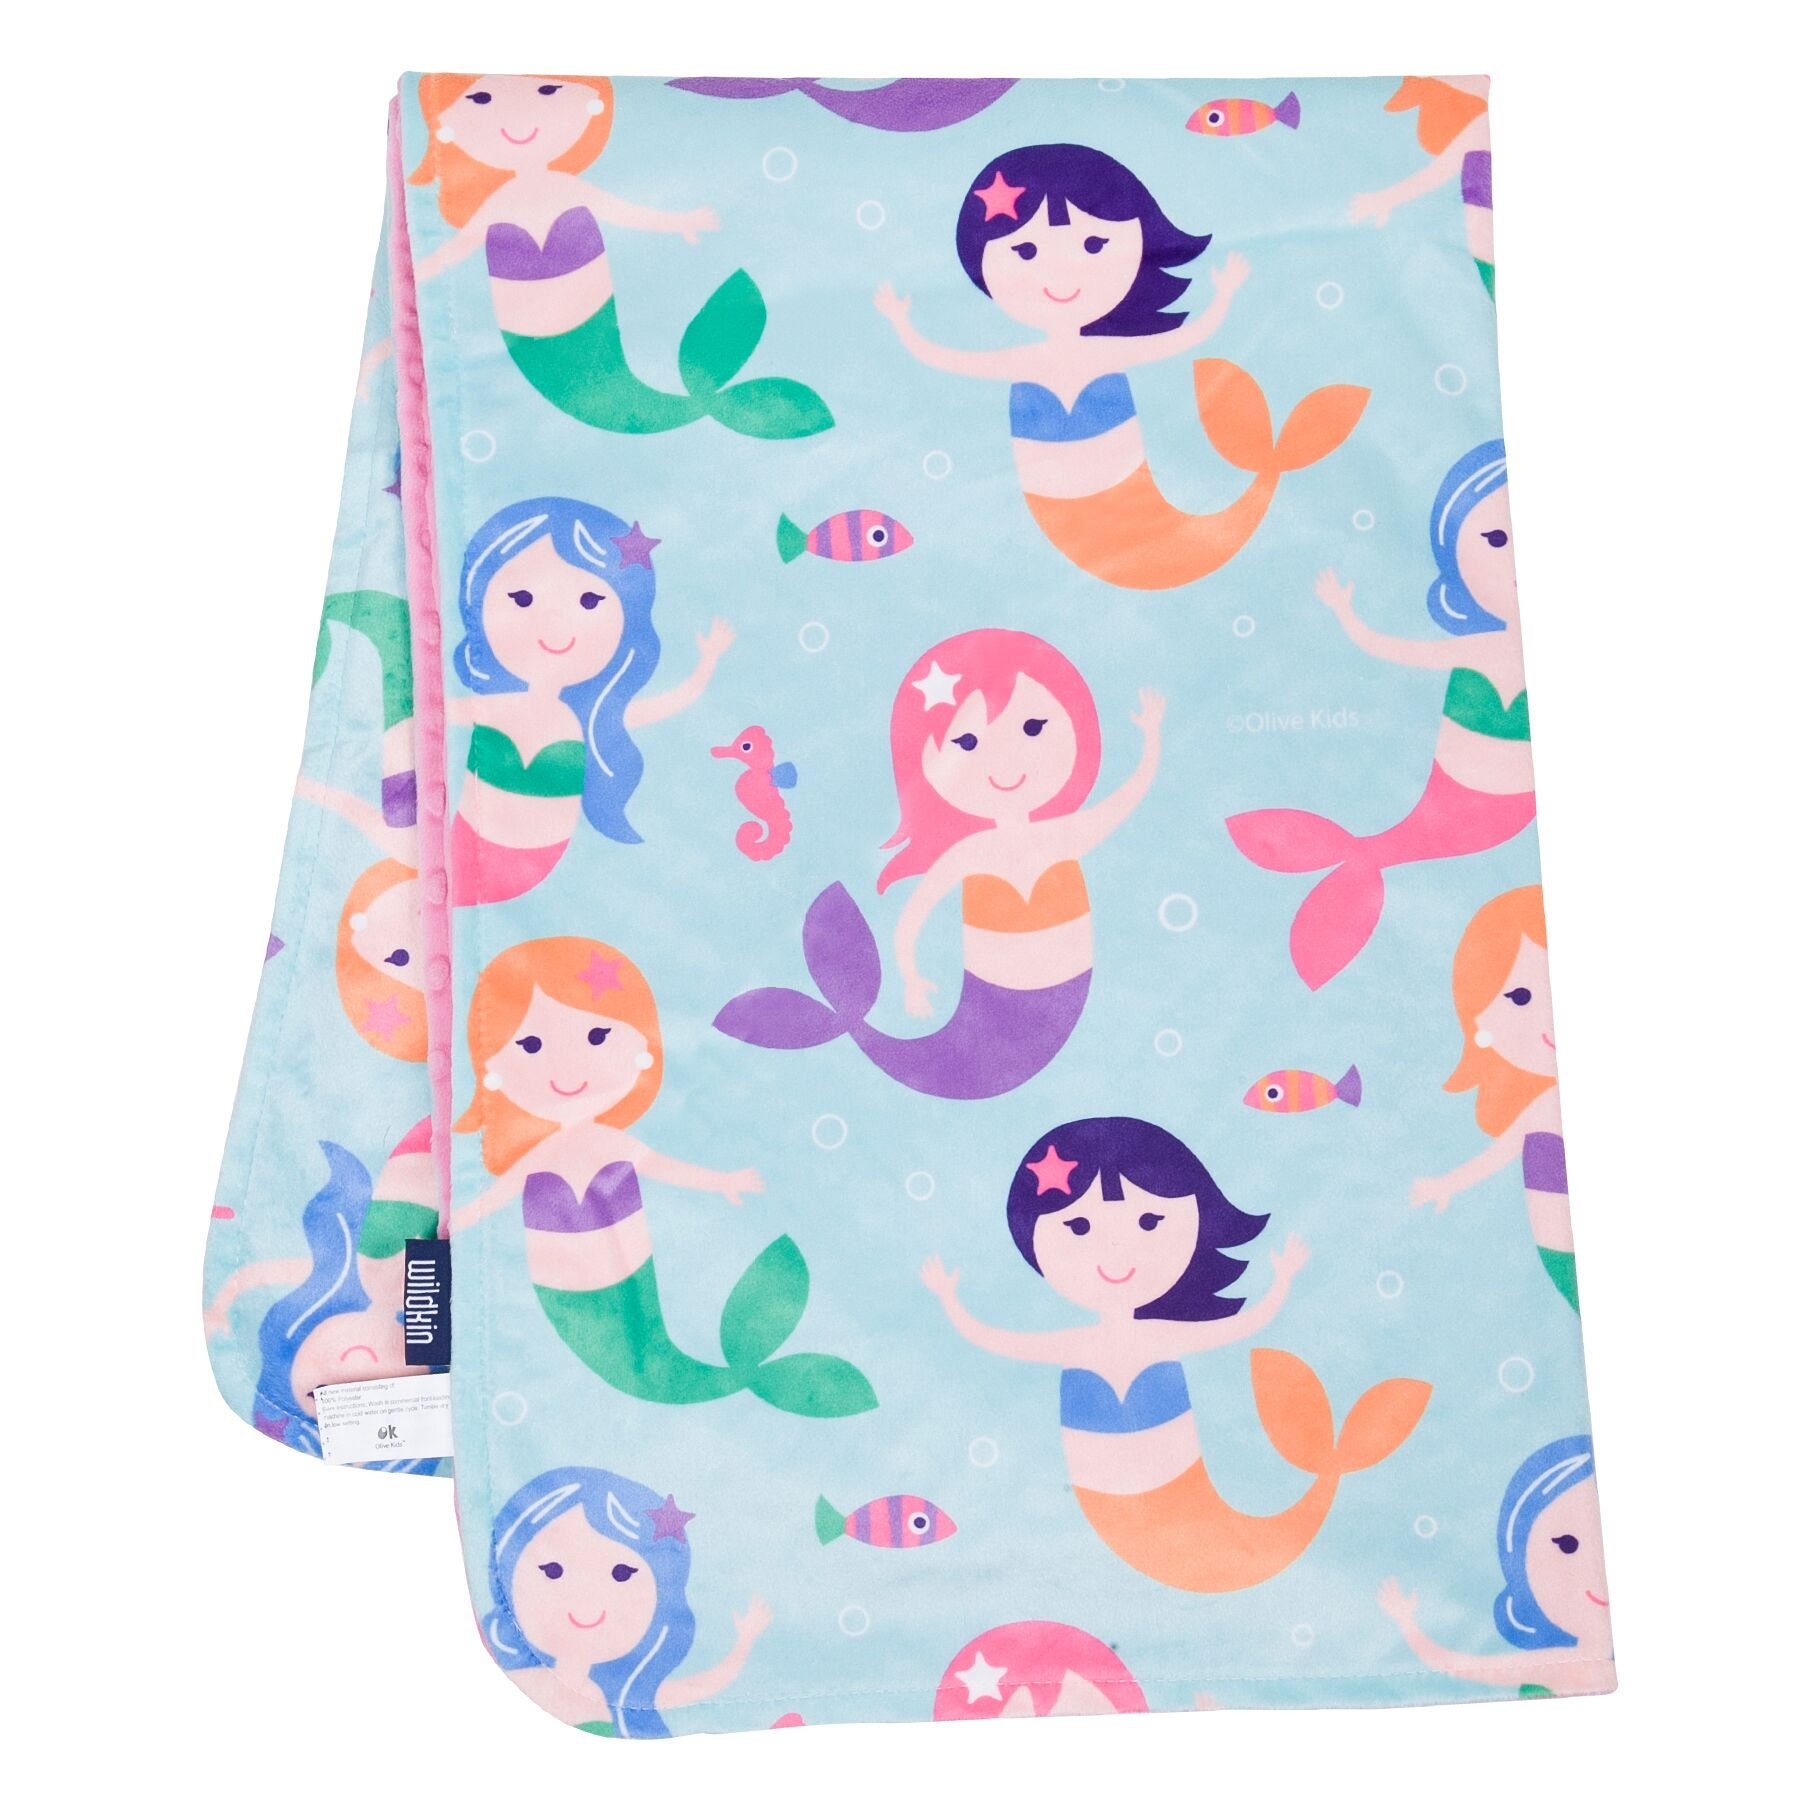 Mermaid Plush Baby Blanket